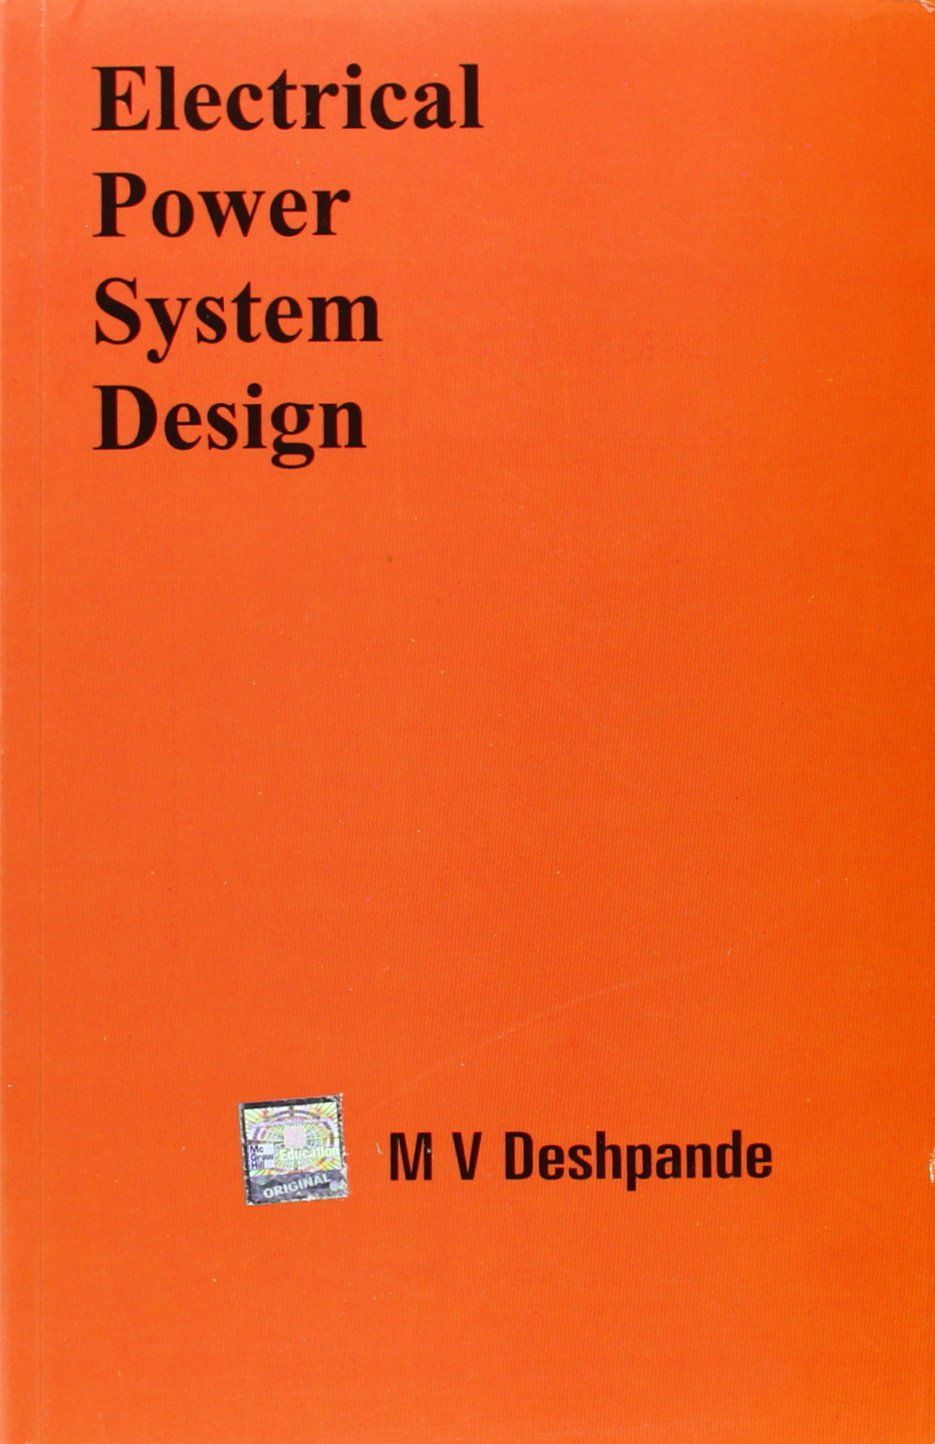 Electrical Power Systems Design India Higher Education Engineering Electrical Engineering Deshpande M V 9780074515754 Amazon Com Books